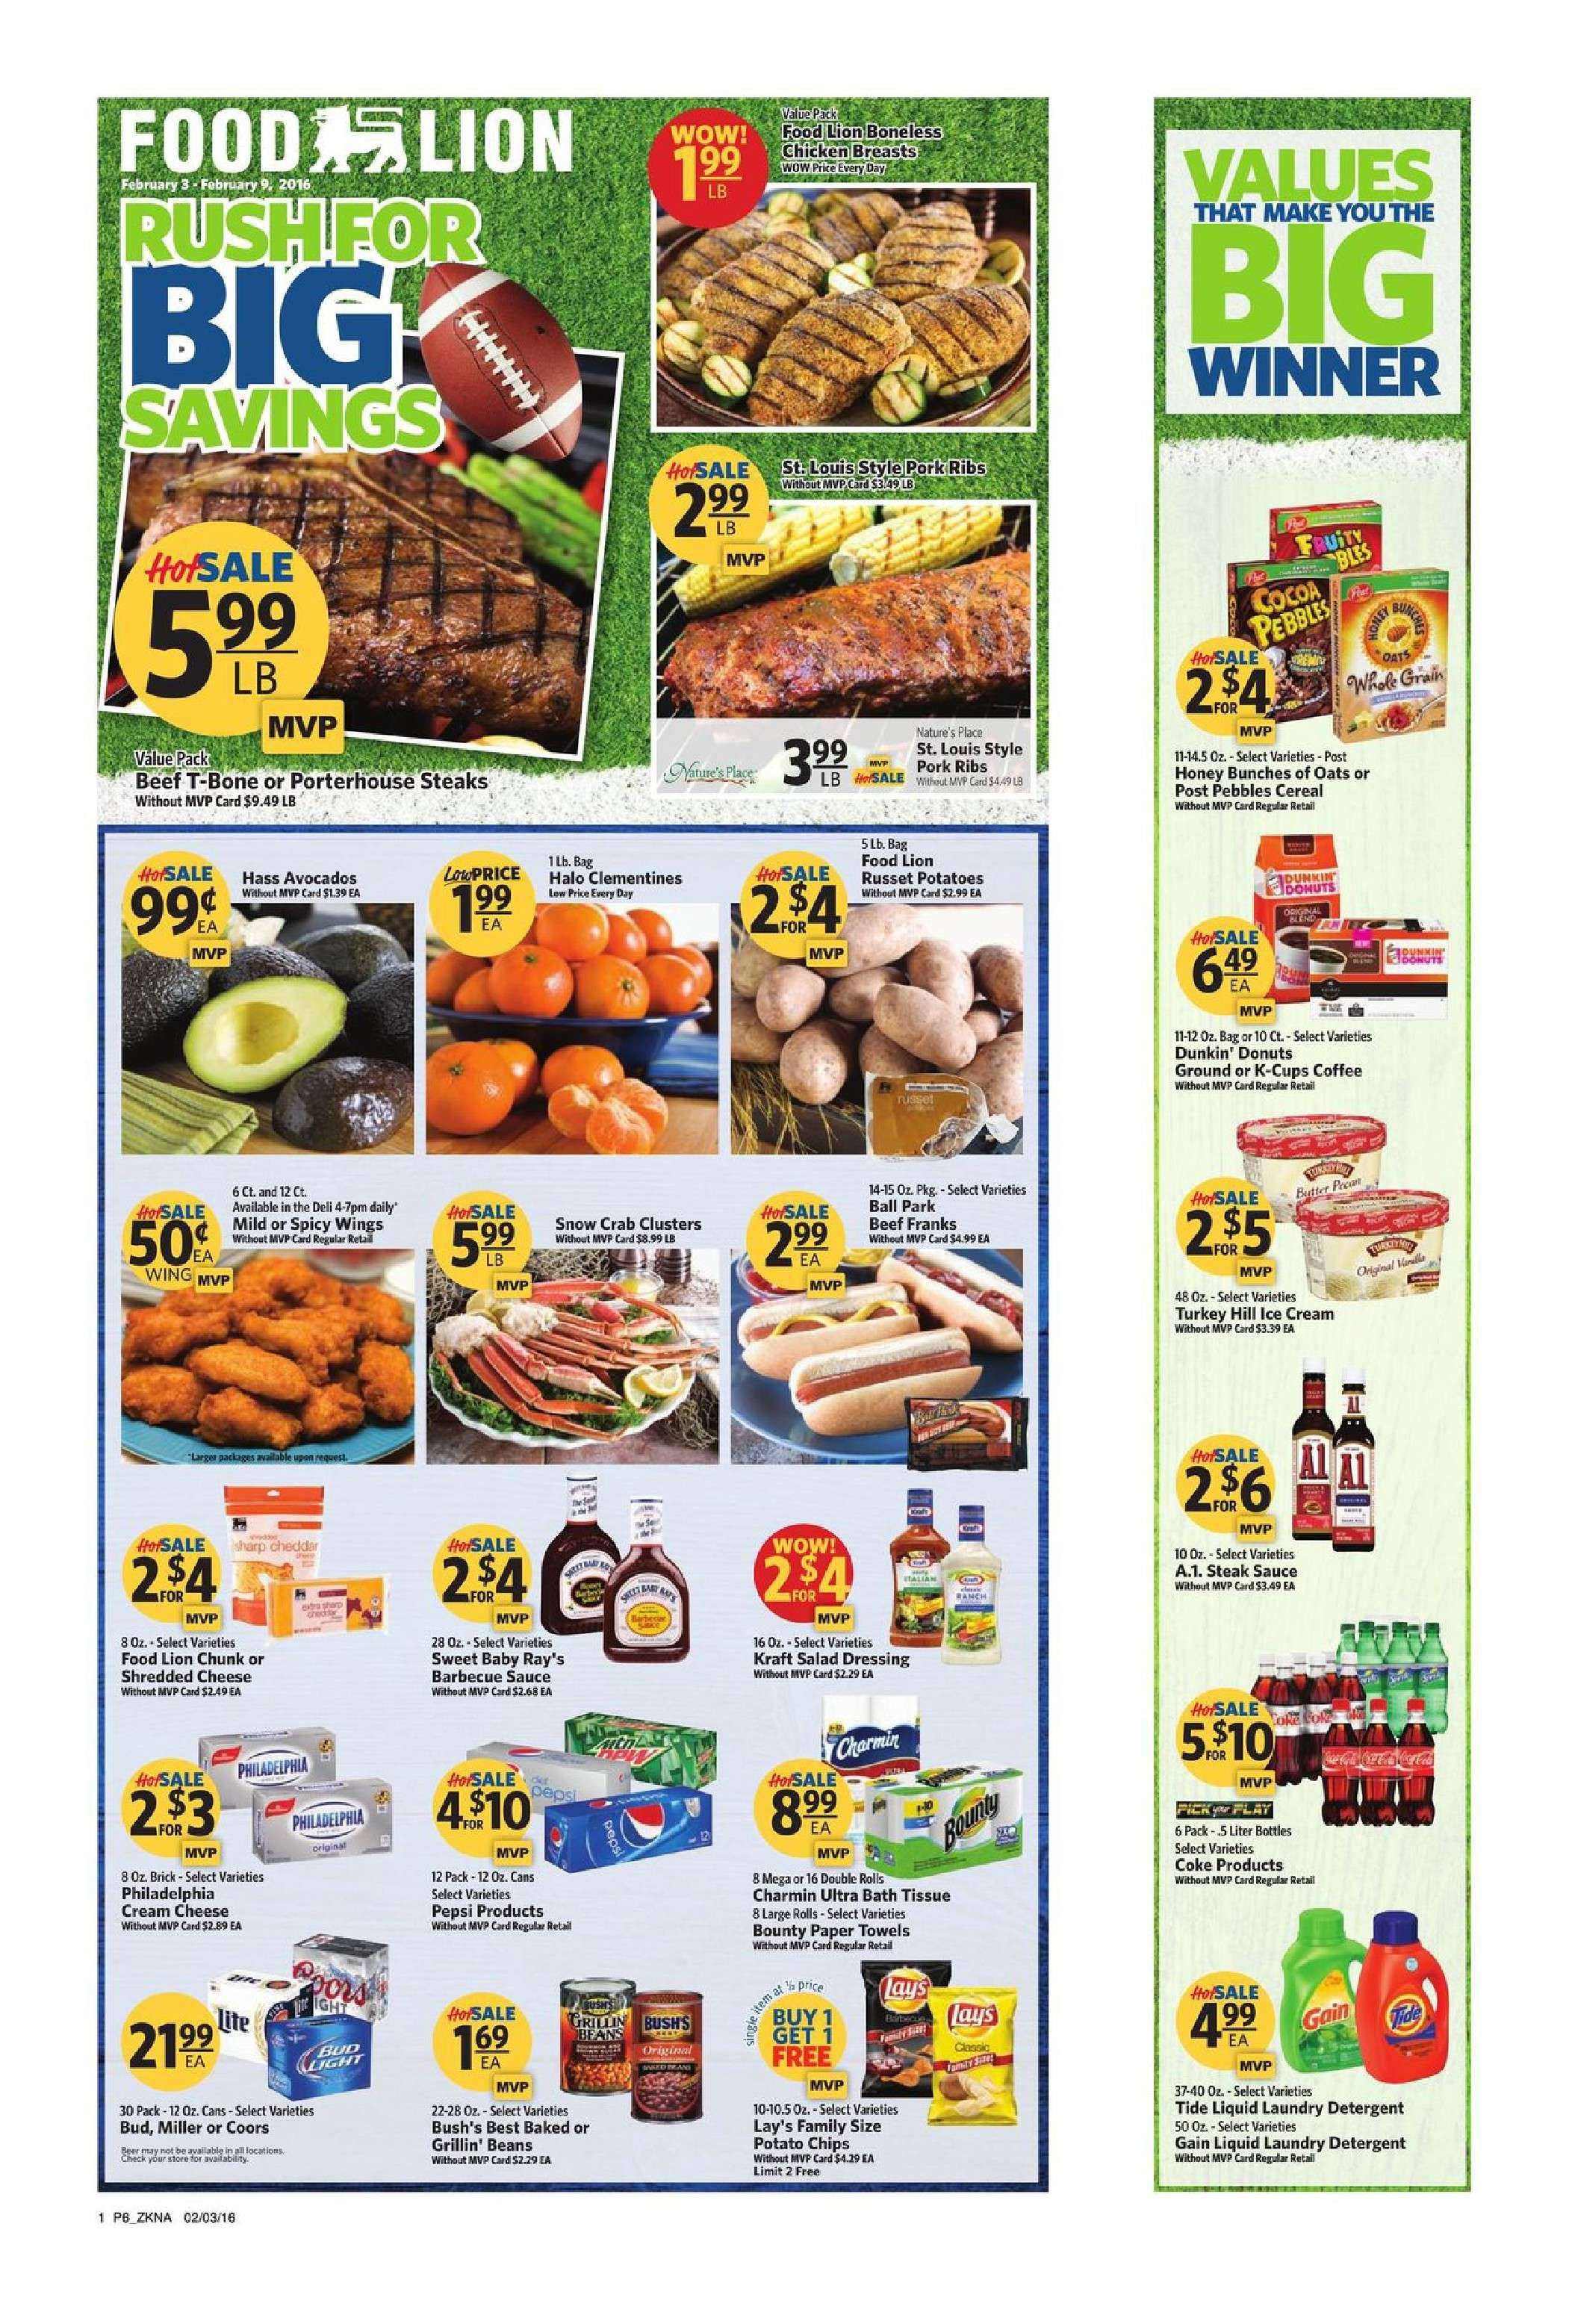 food lion sales paper Grocery 14 items health & beauty 29 items meat 18 items produce 12 items  6 huge or 12 large bounty paper towels mvp $1199 ea w/ mfr discount savings select varieties pampers super pack diapers or training pants mvp $2199 ea w/ mfr  food lion bone-in chicken breast mvp $099 lb.